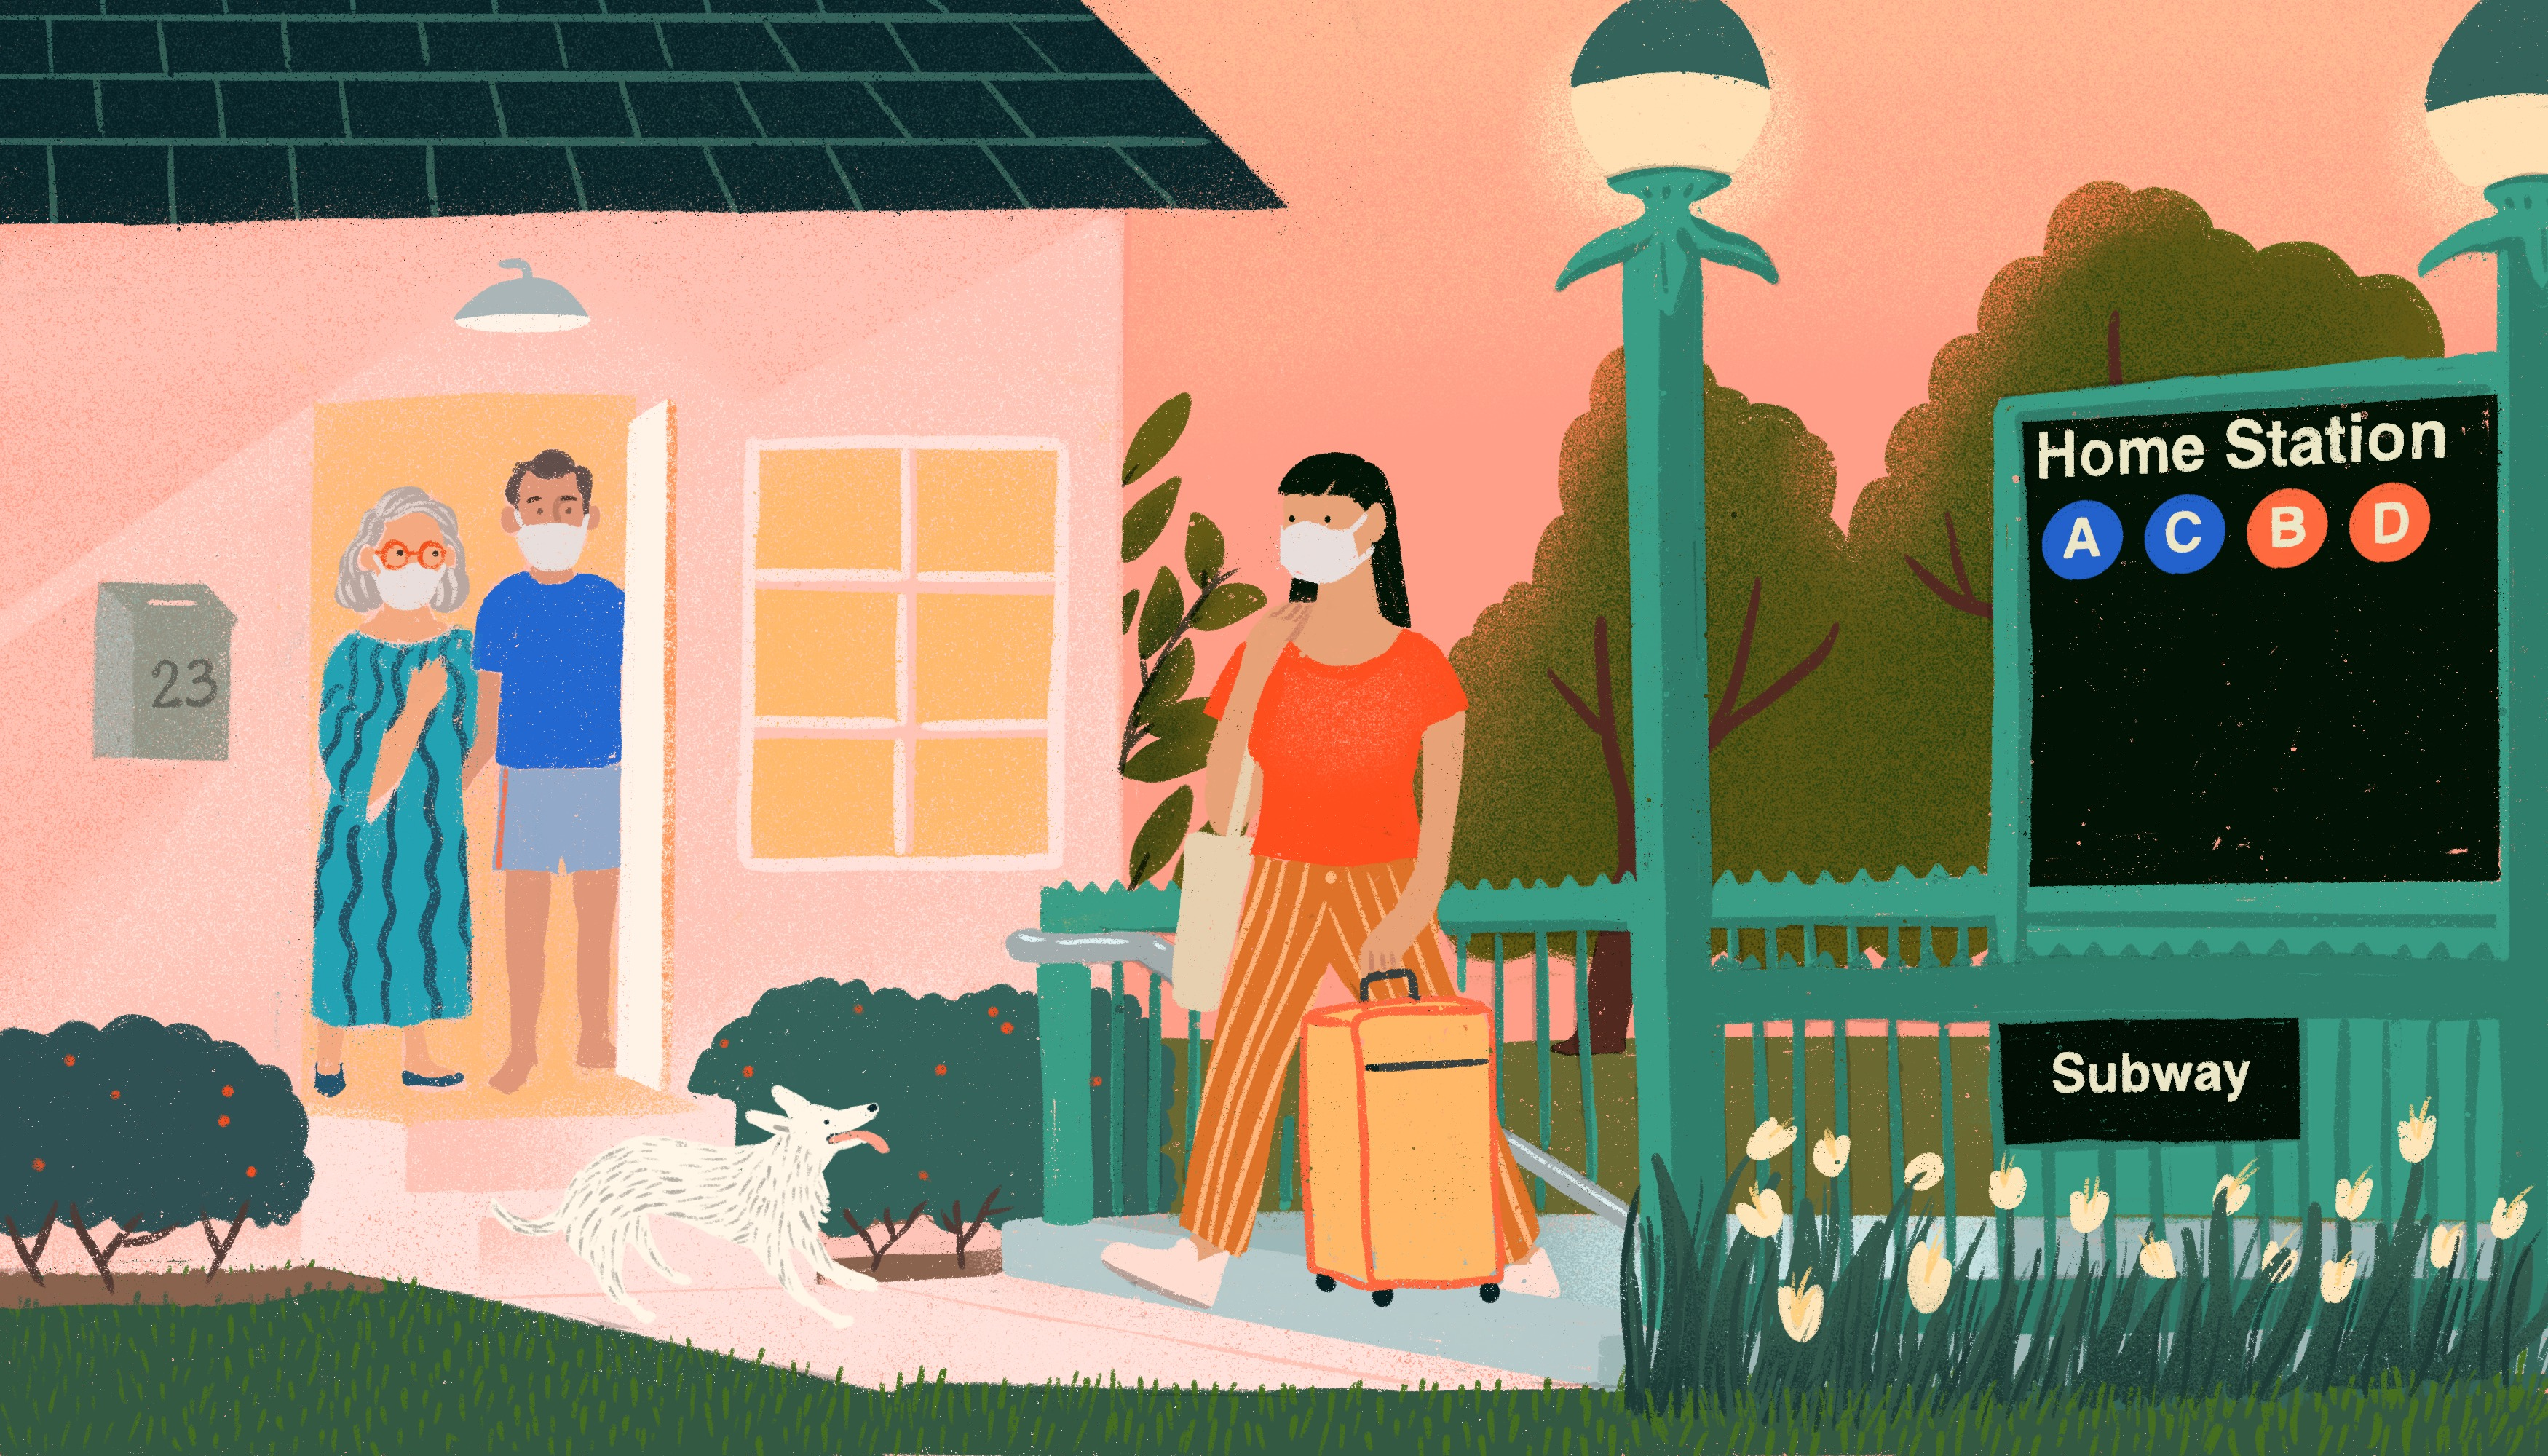 """A woman wearing a face mask ascends from a subway entrance labeled """"Home Station"""", she is rolling a suitcase behind her. Ahead of the woman is a set of older parents also wearing masks, waiting for her in the doorway of a single-family home. Illustration."""